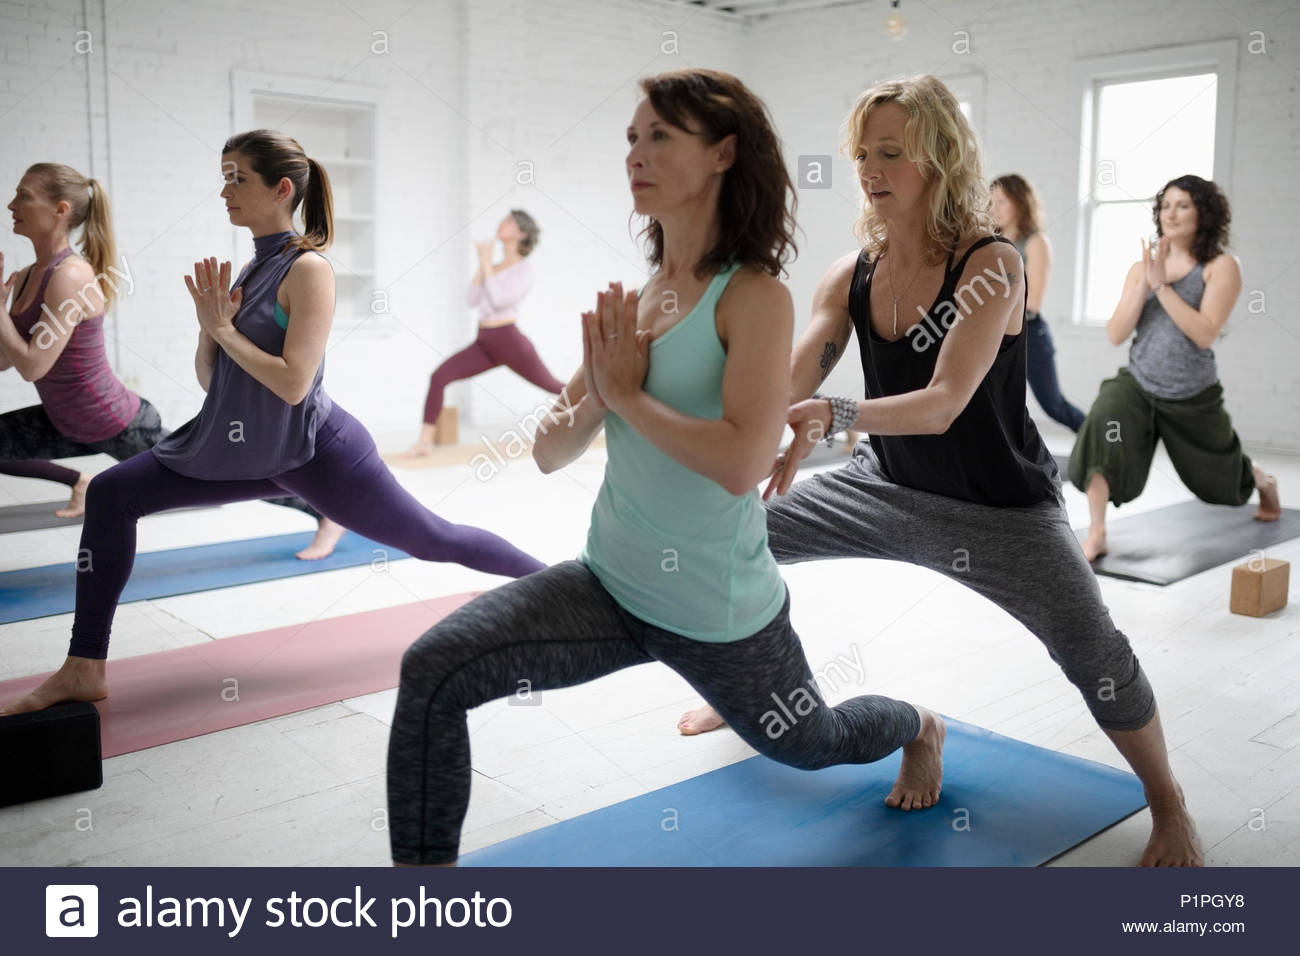 Yoga instructor guiding woman practicing warrior one pose - Stock Image